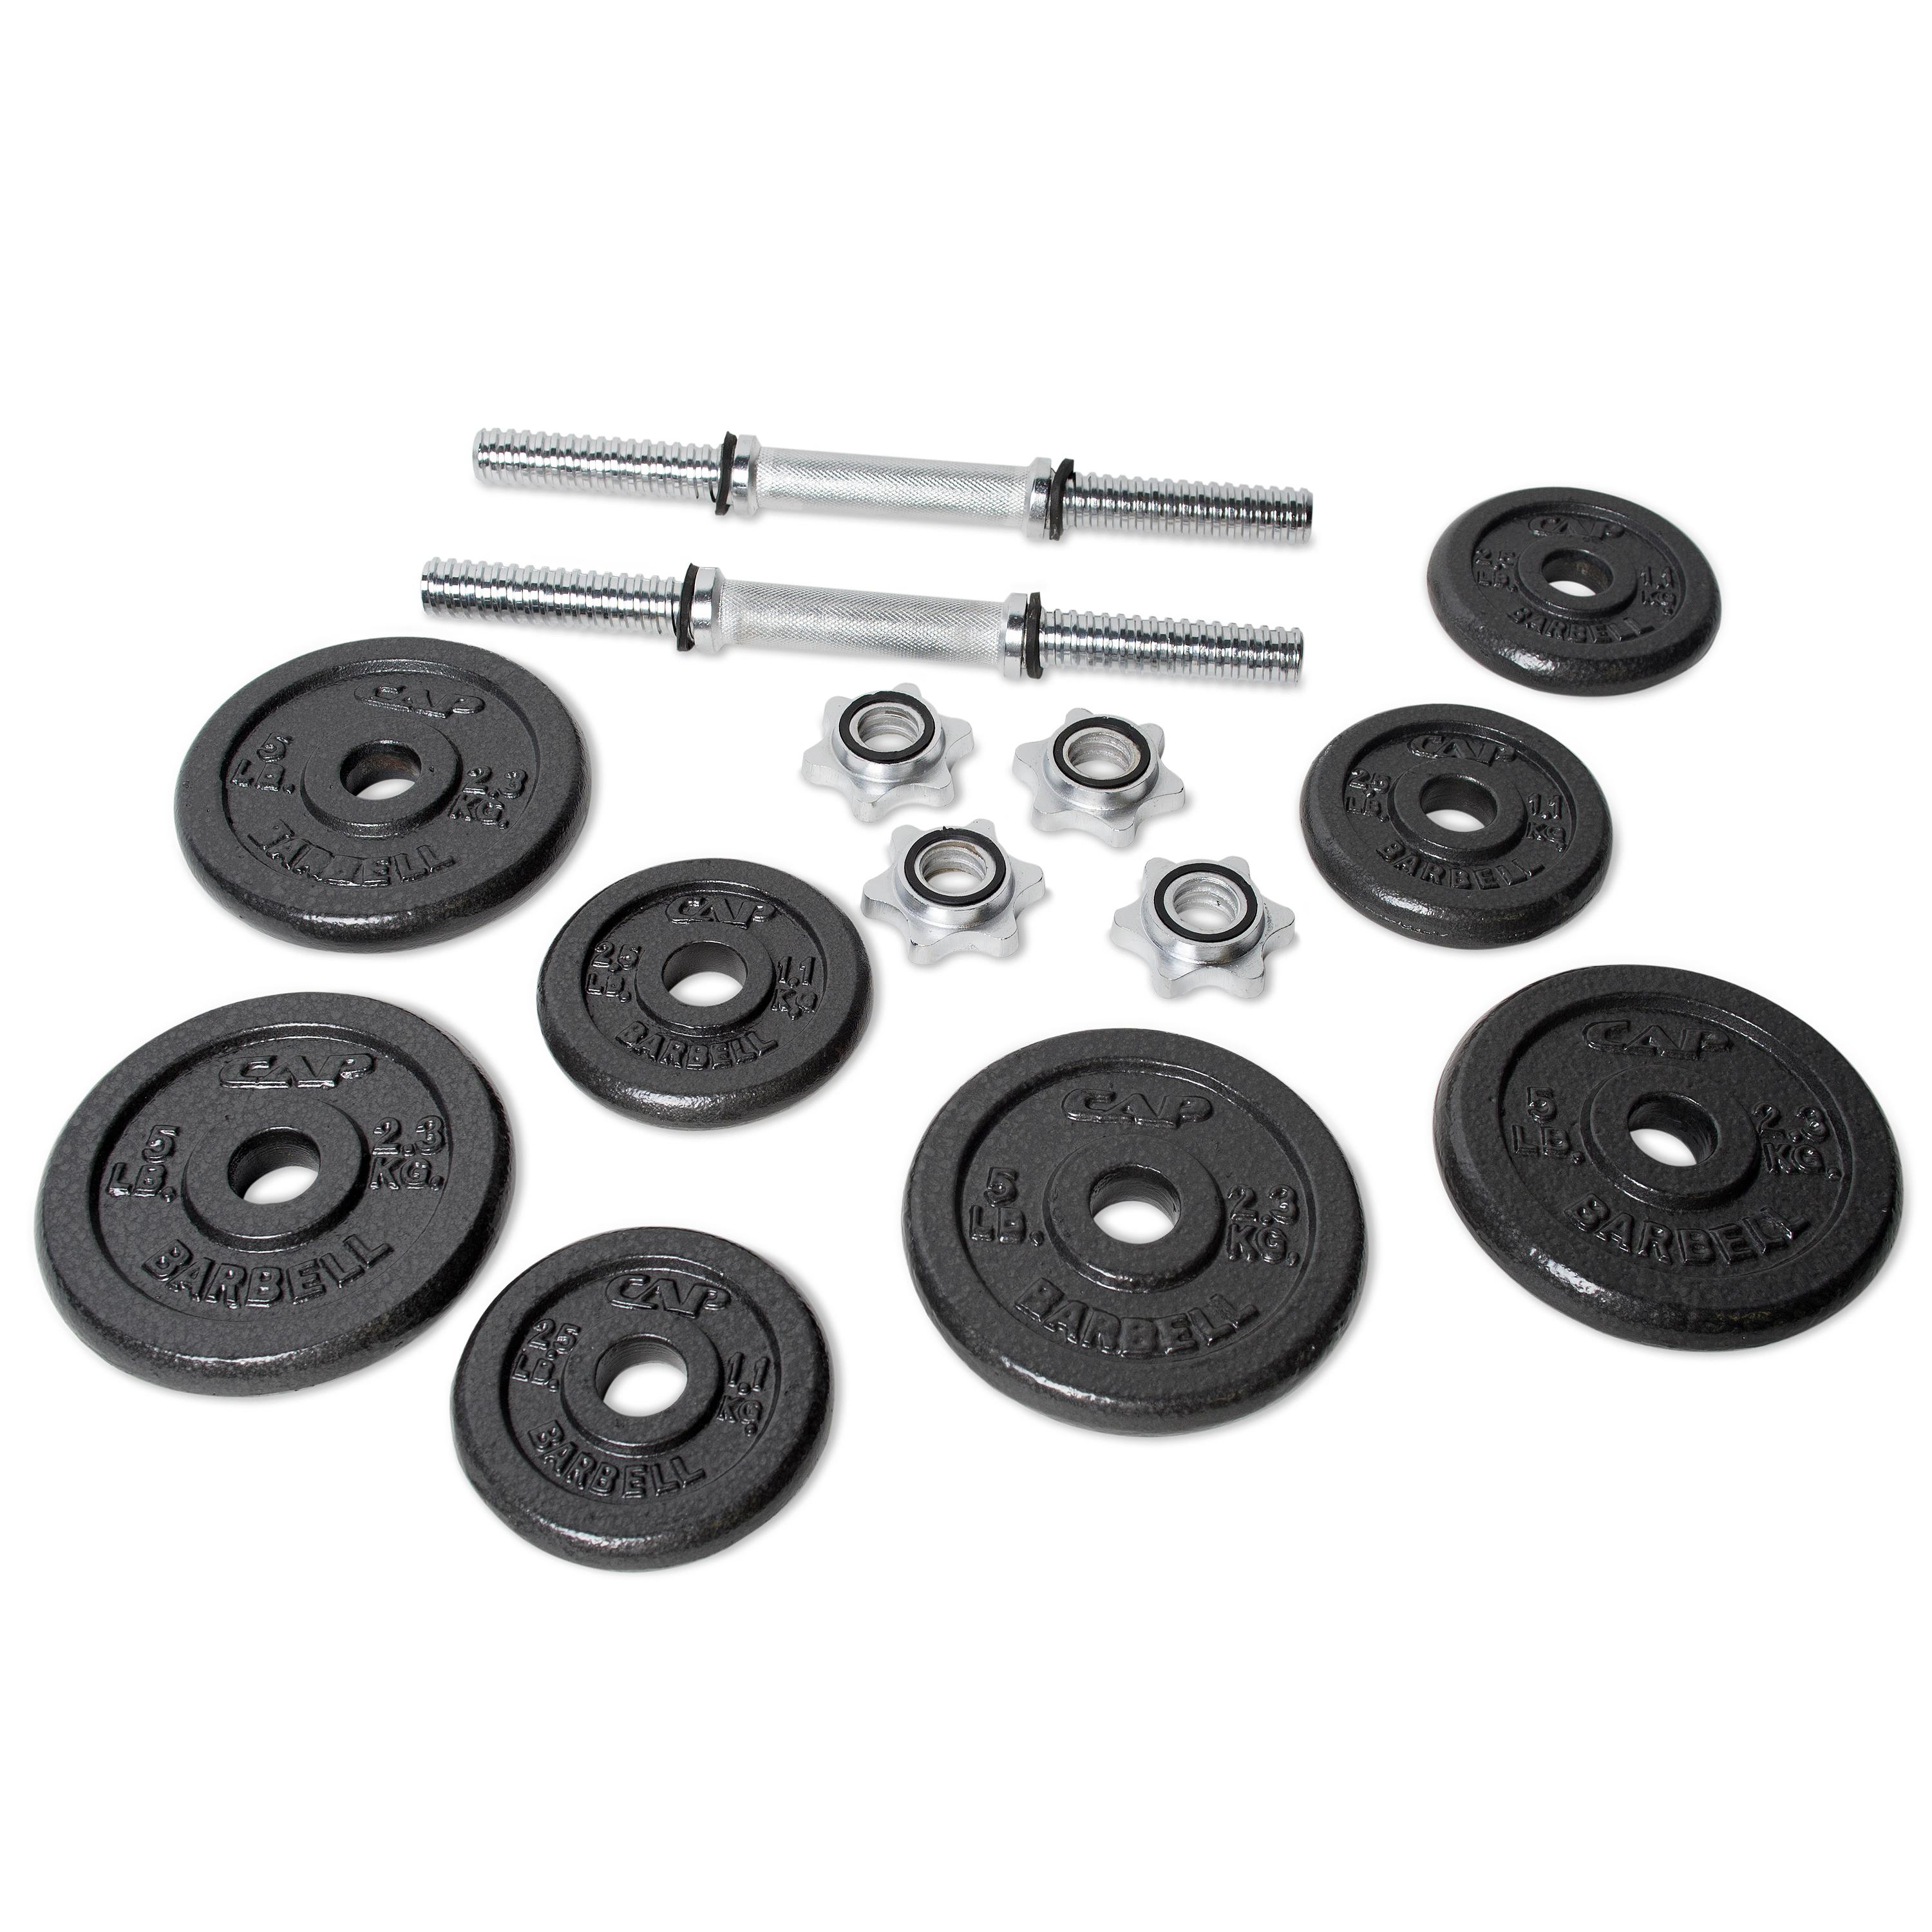 Dumbbell Set Up To 50: Amazon.com : CAP Barbell 40-pound Adjustable Dumbbell Set